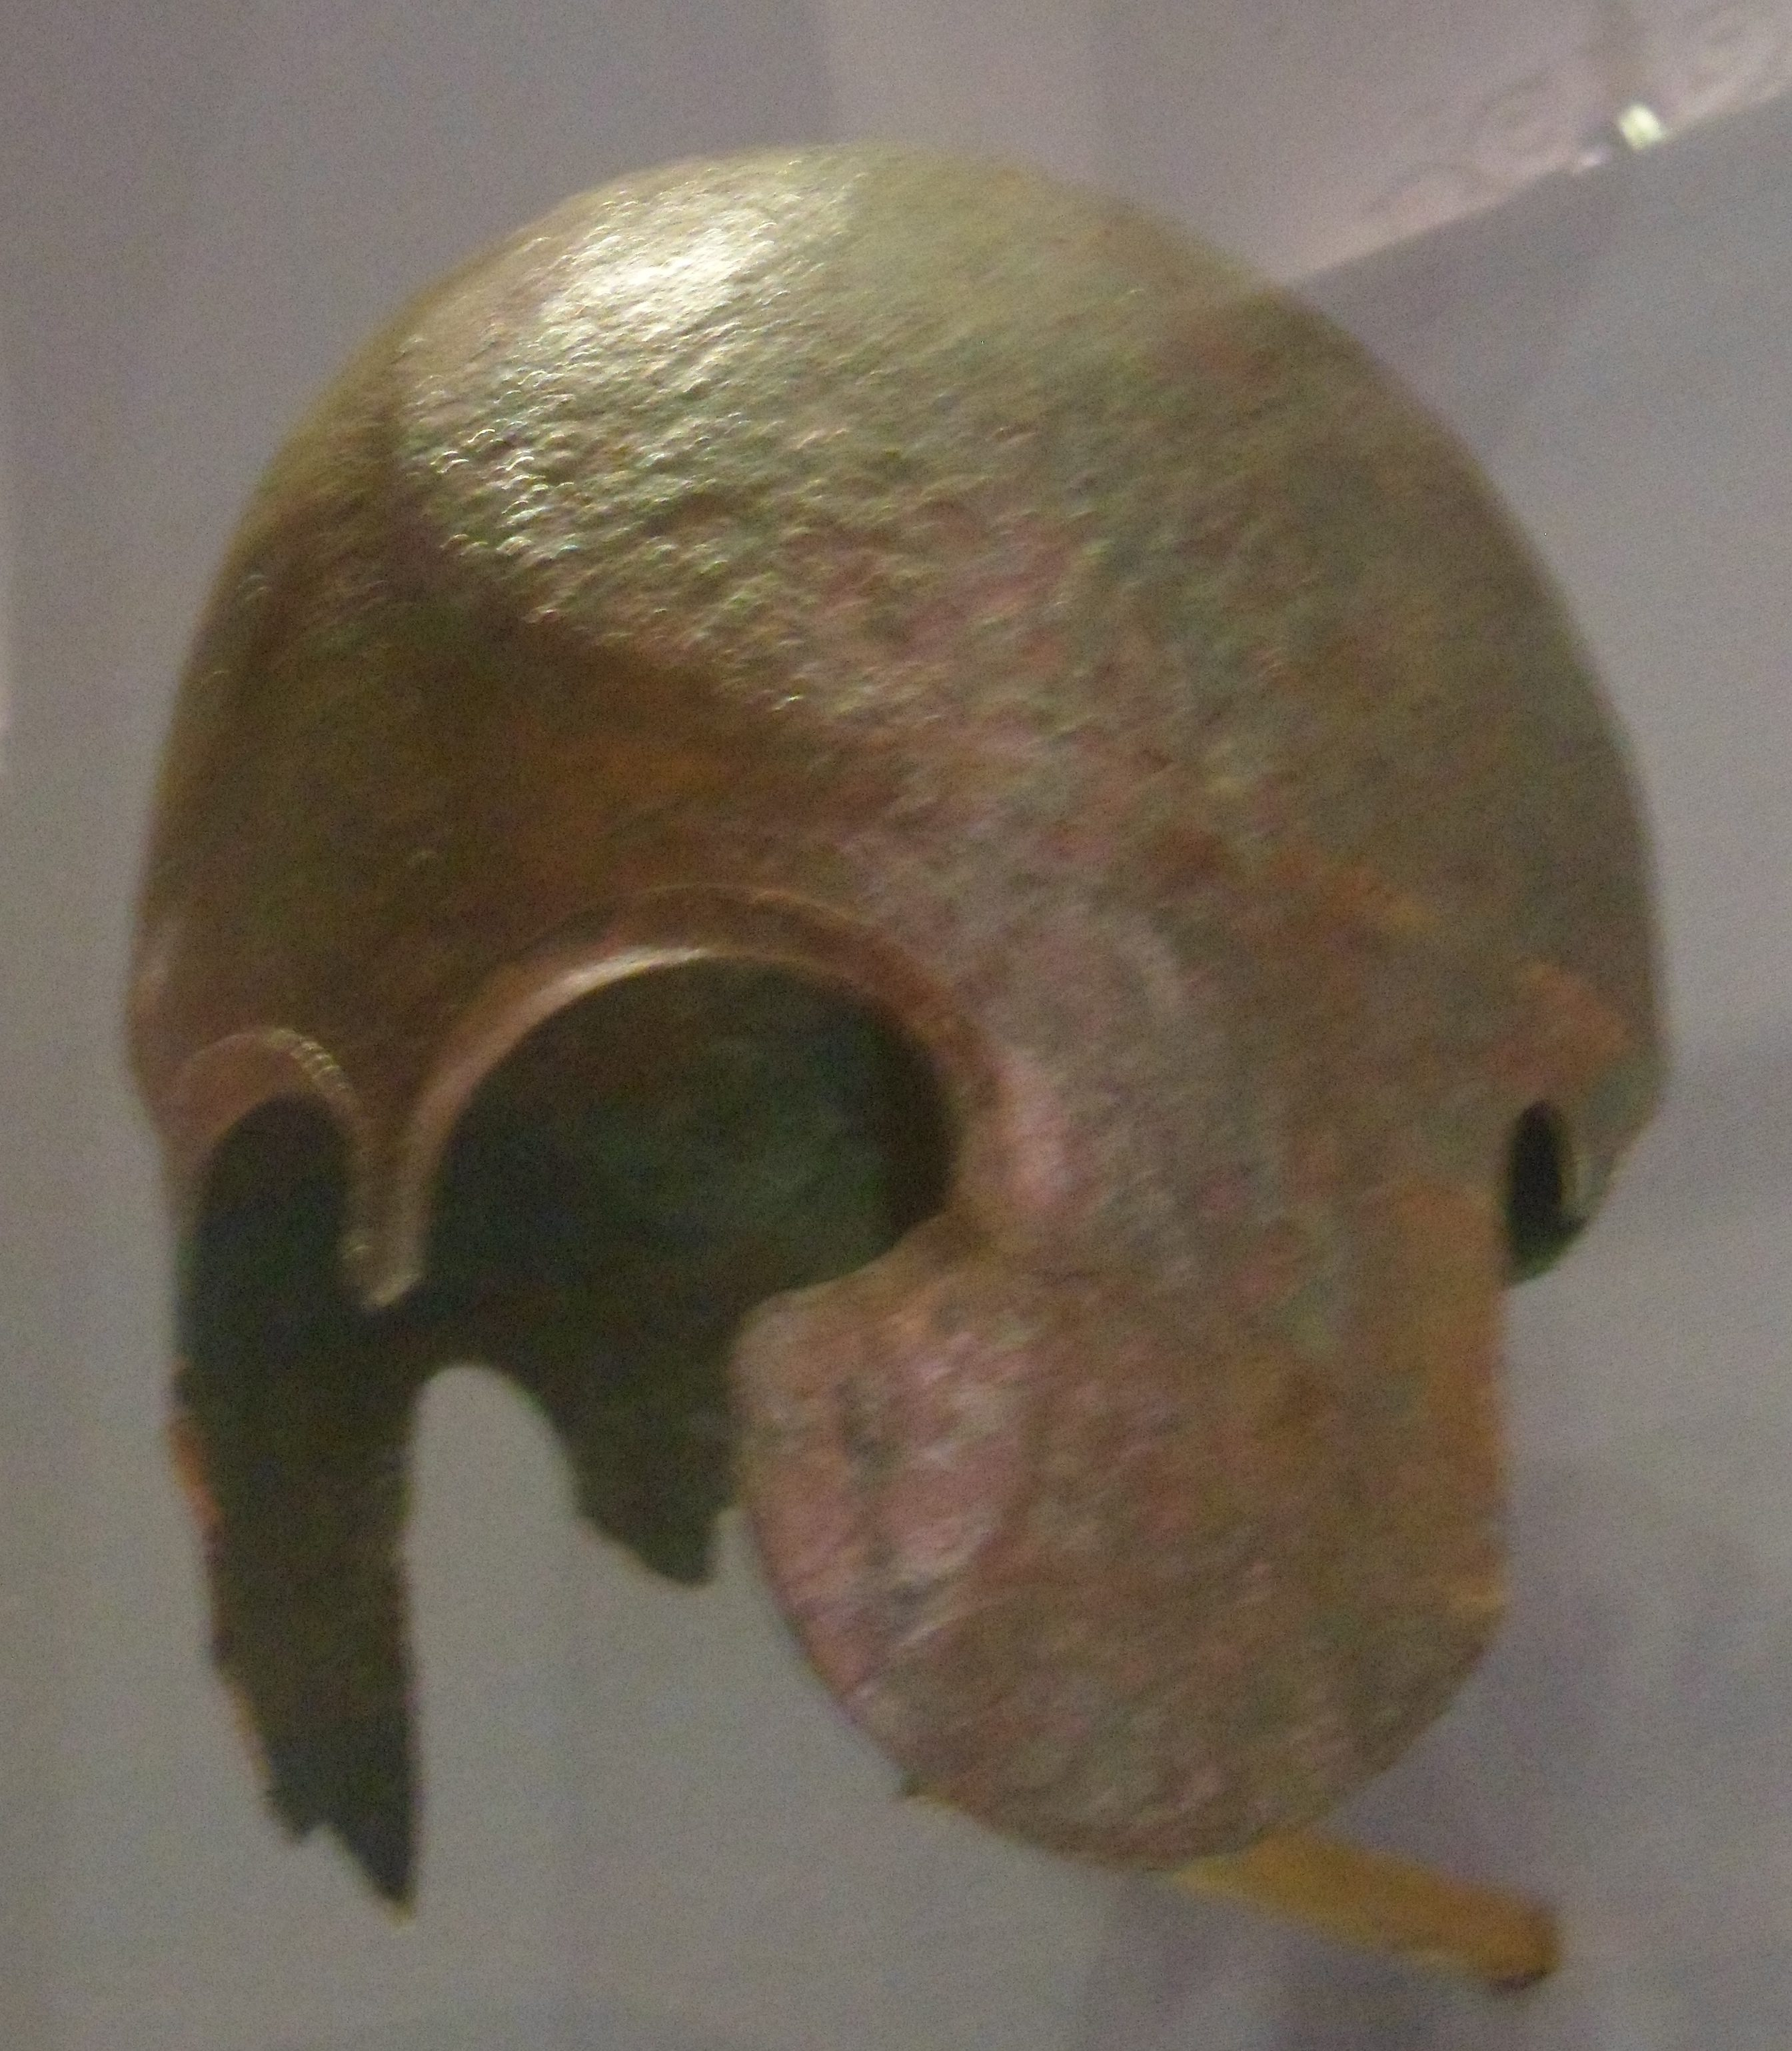 A corroded bronze helmet with cheek flaps and a narrow nasal